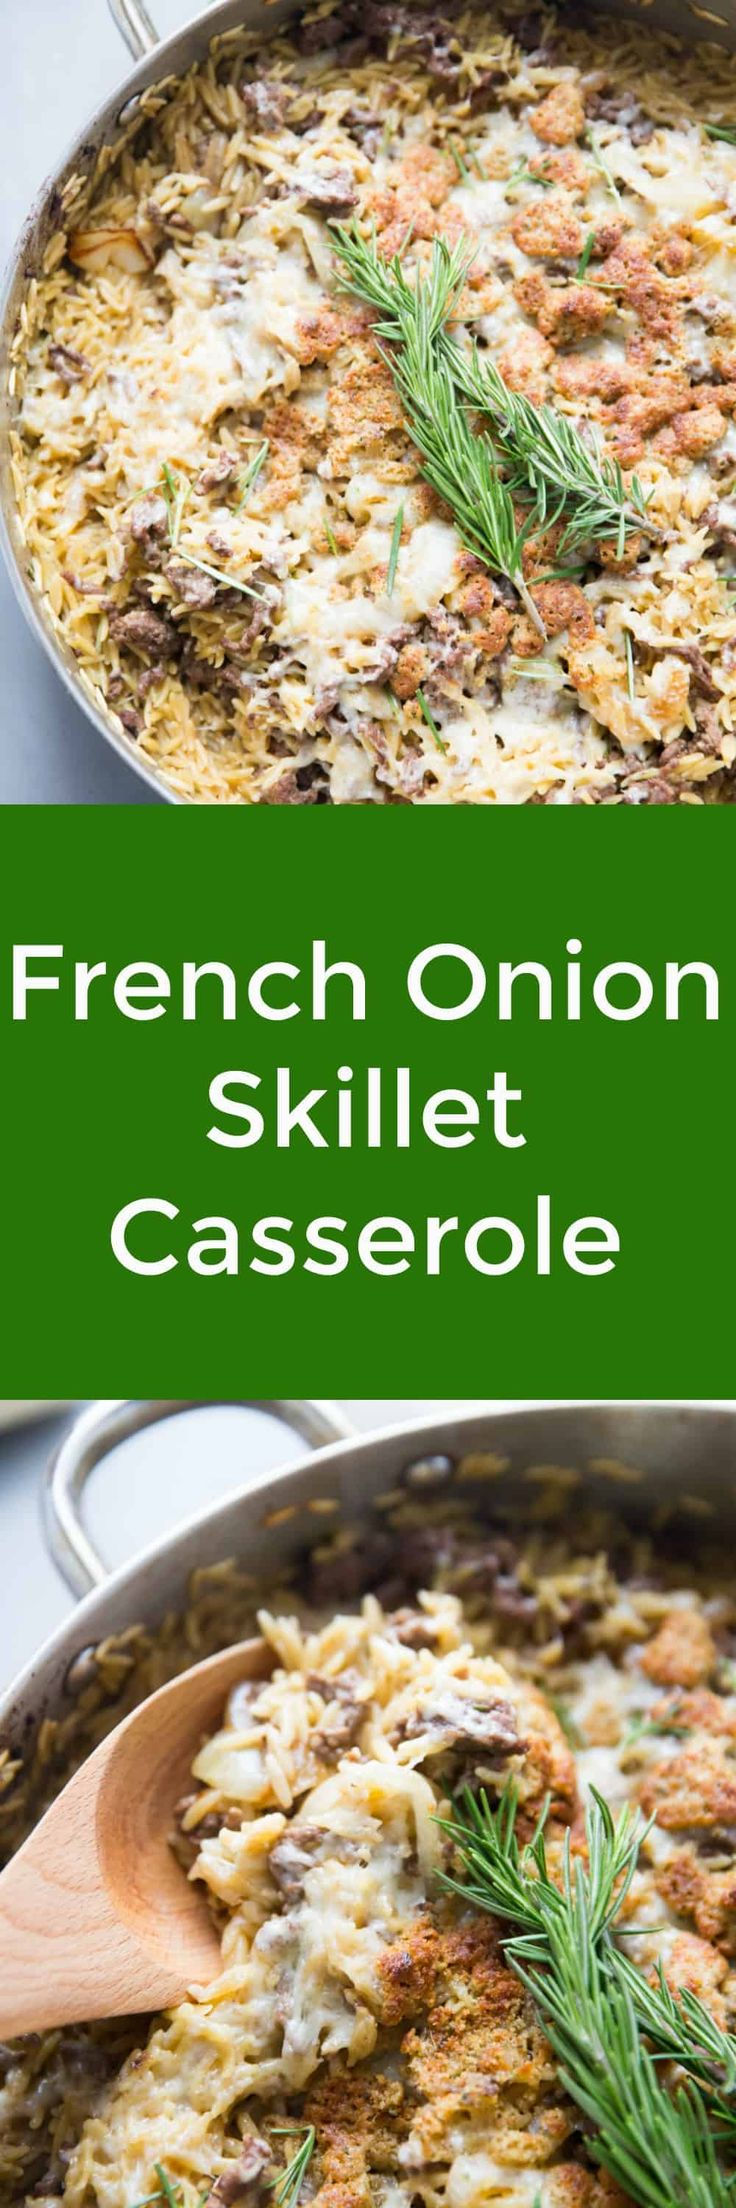 This skillet beef casserole is for the French onion lovers! Caramelized onions, beef, seasoning, orzo and Gruyere cheese come together in a comforting and simple one pot casserole! via @Lemonsforlulu